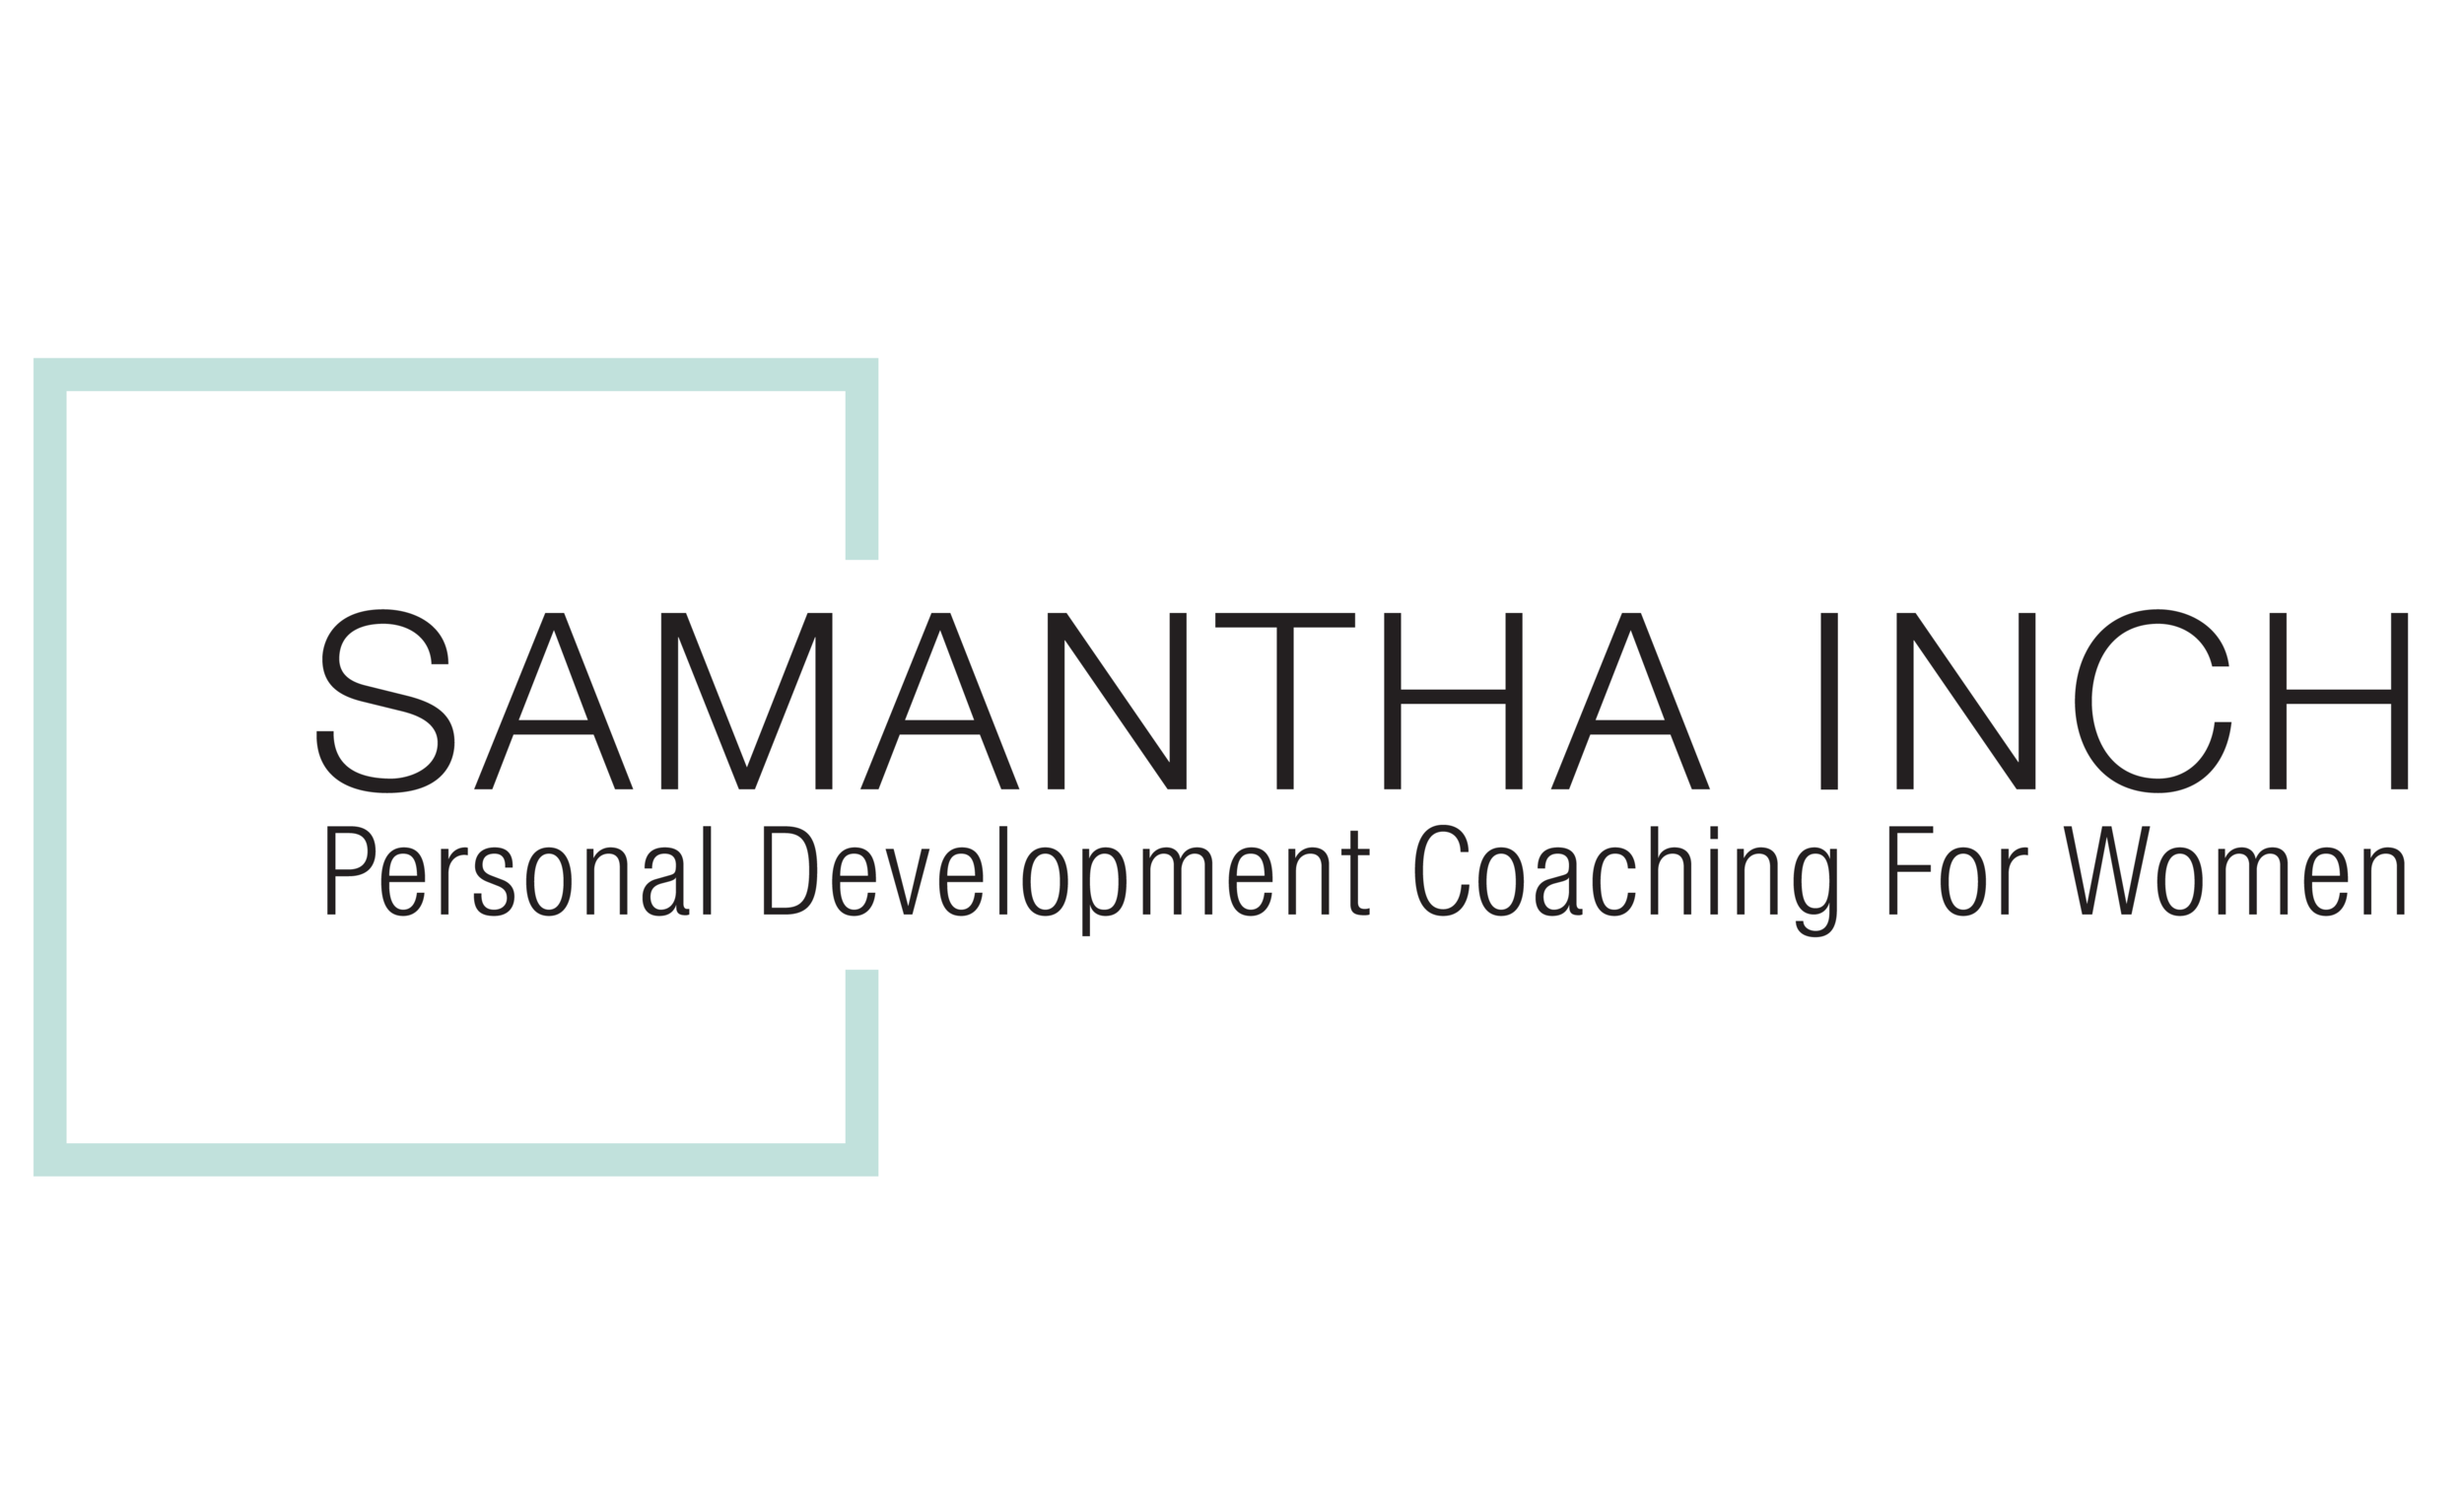 Click the image for details about the coaching packages and to sign up.